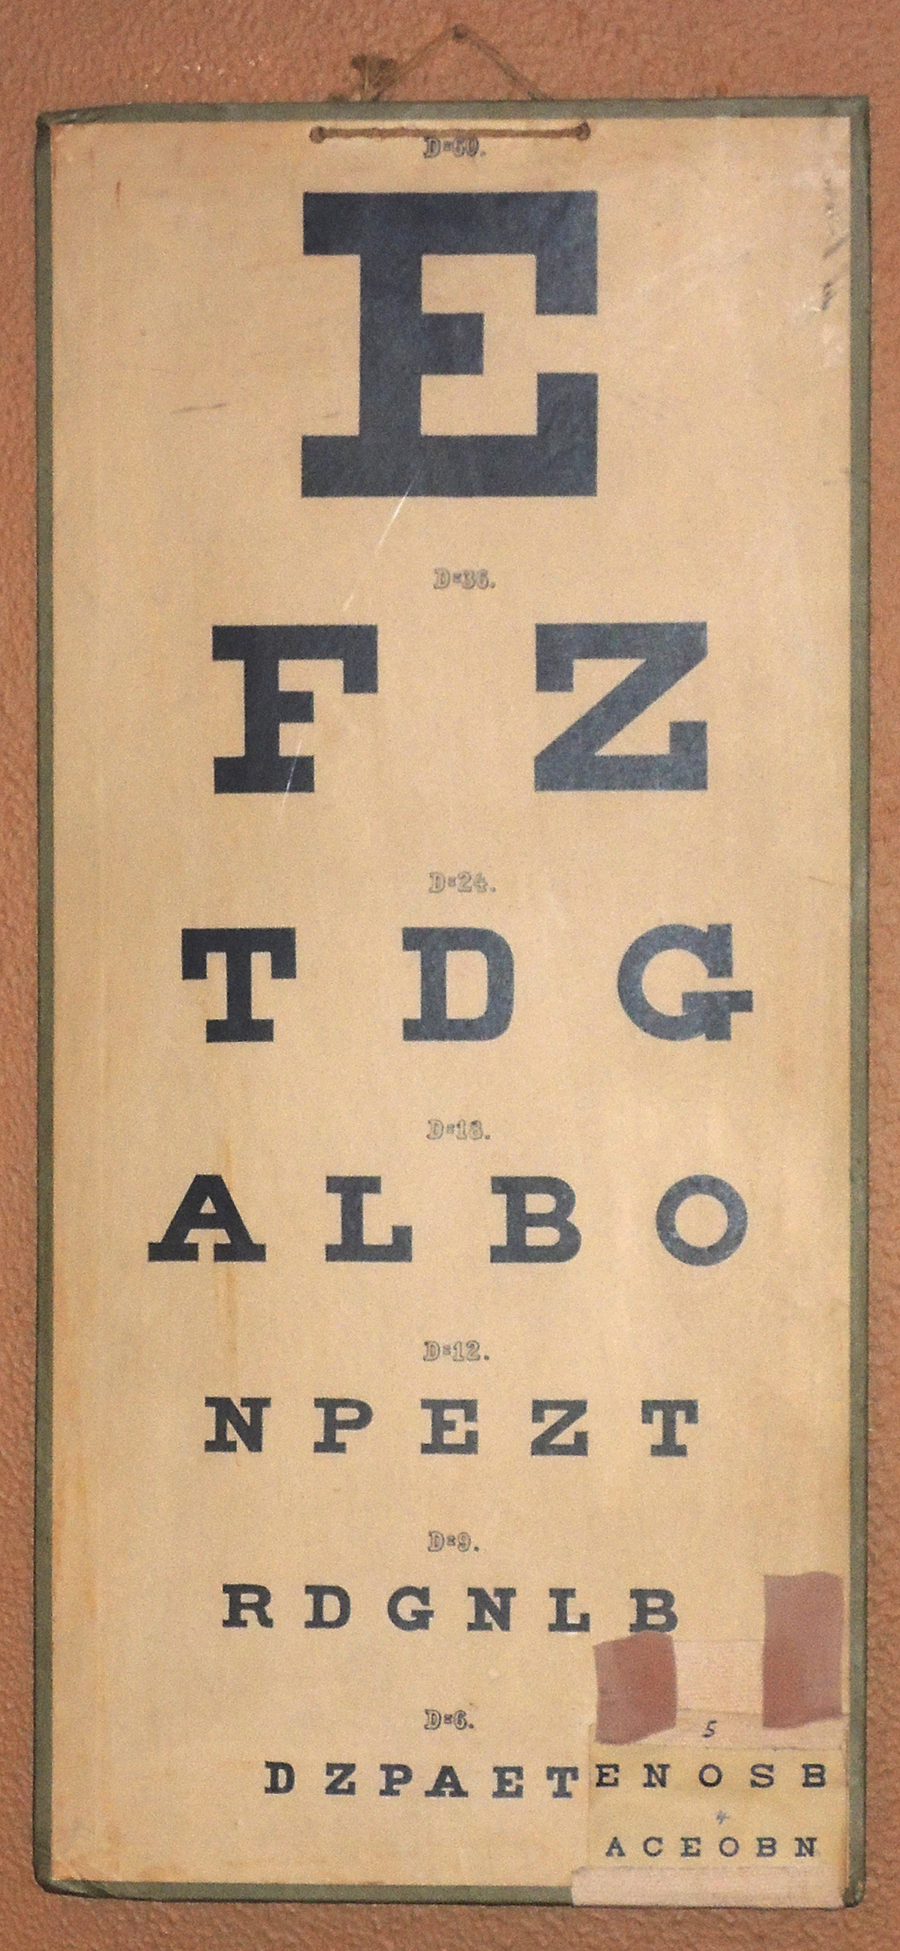 About Visual Acuity